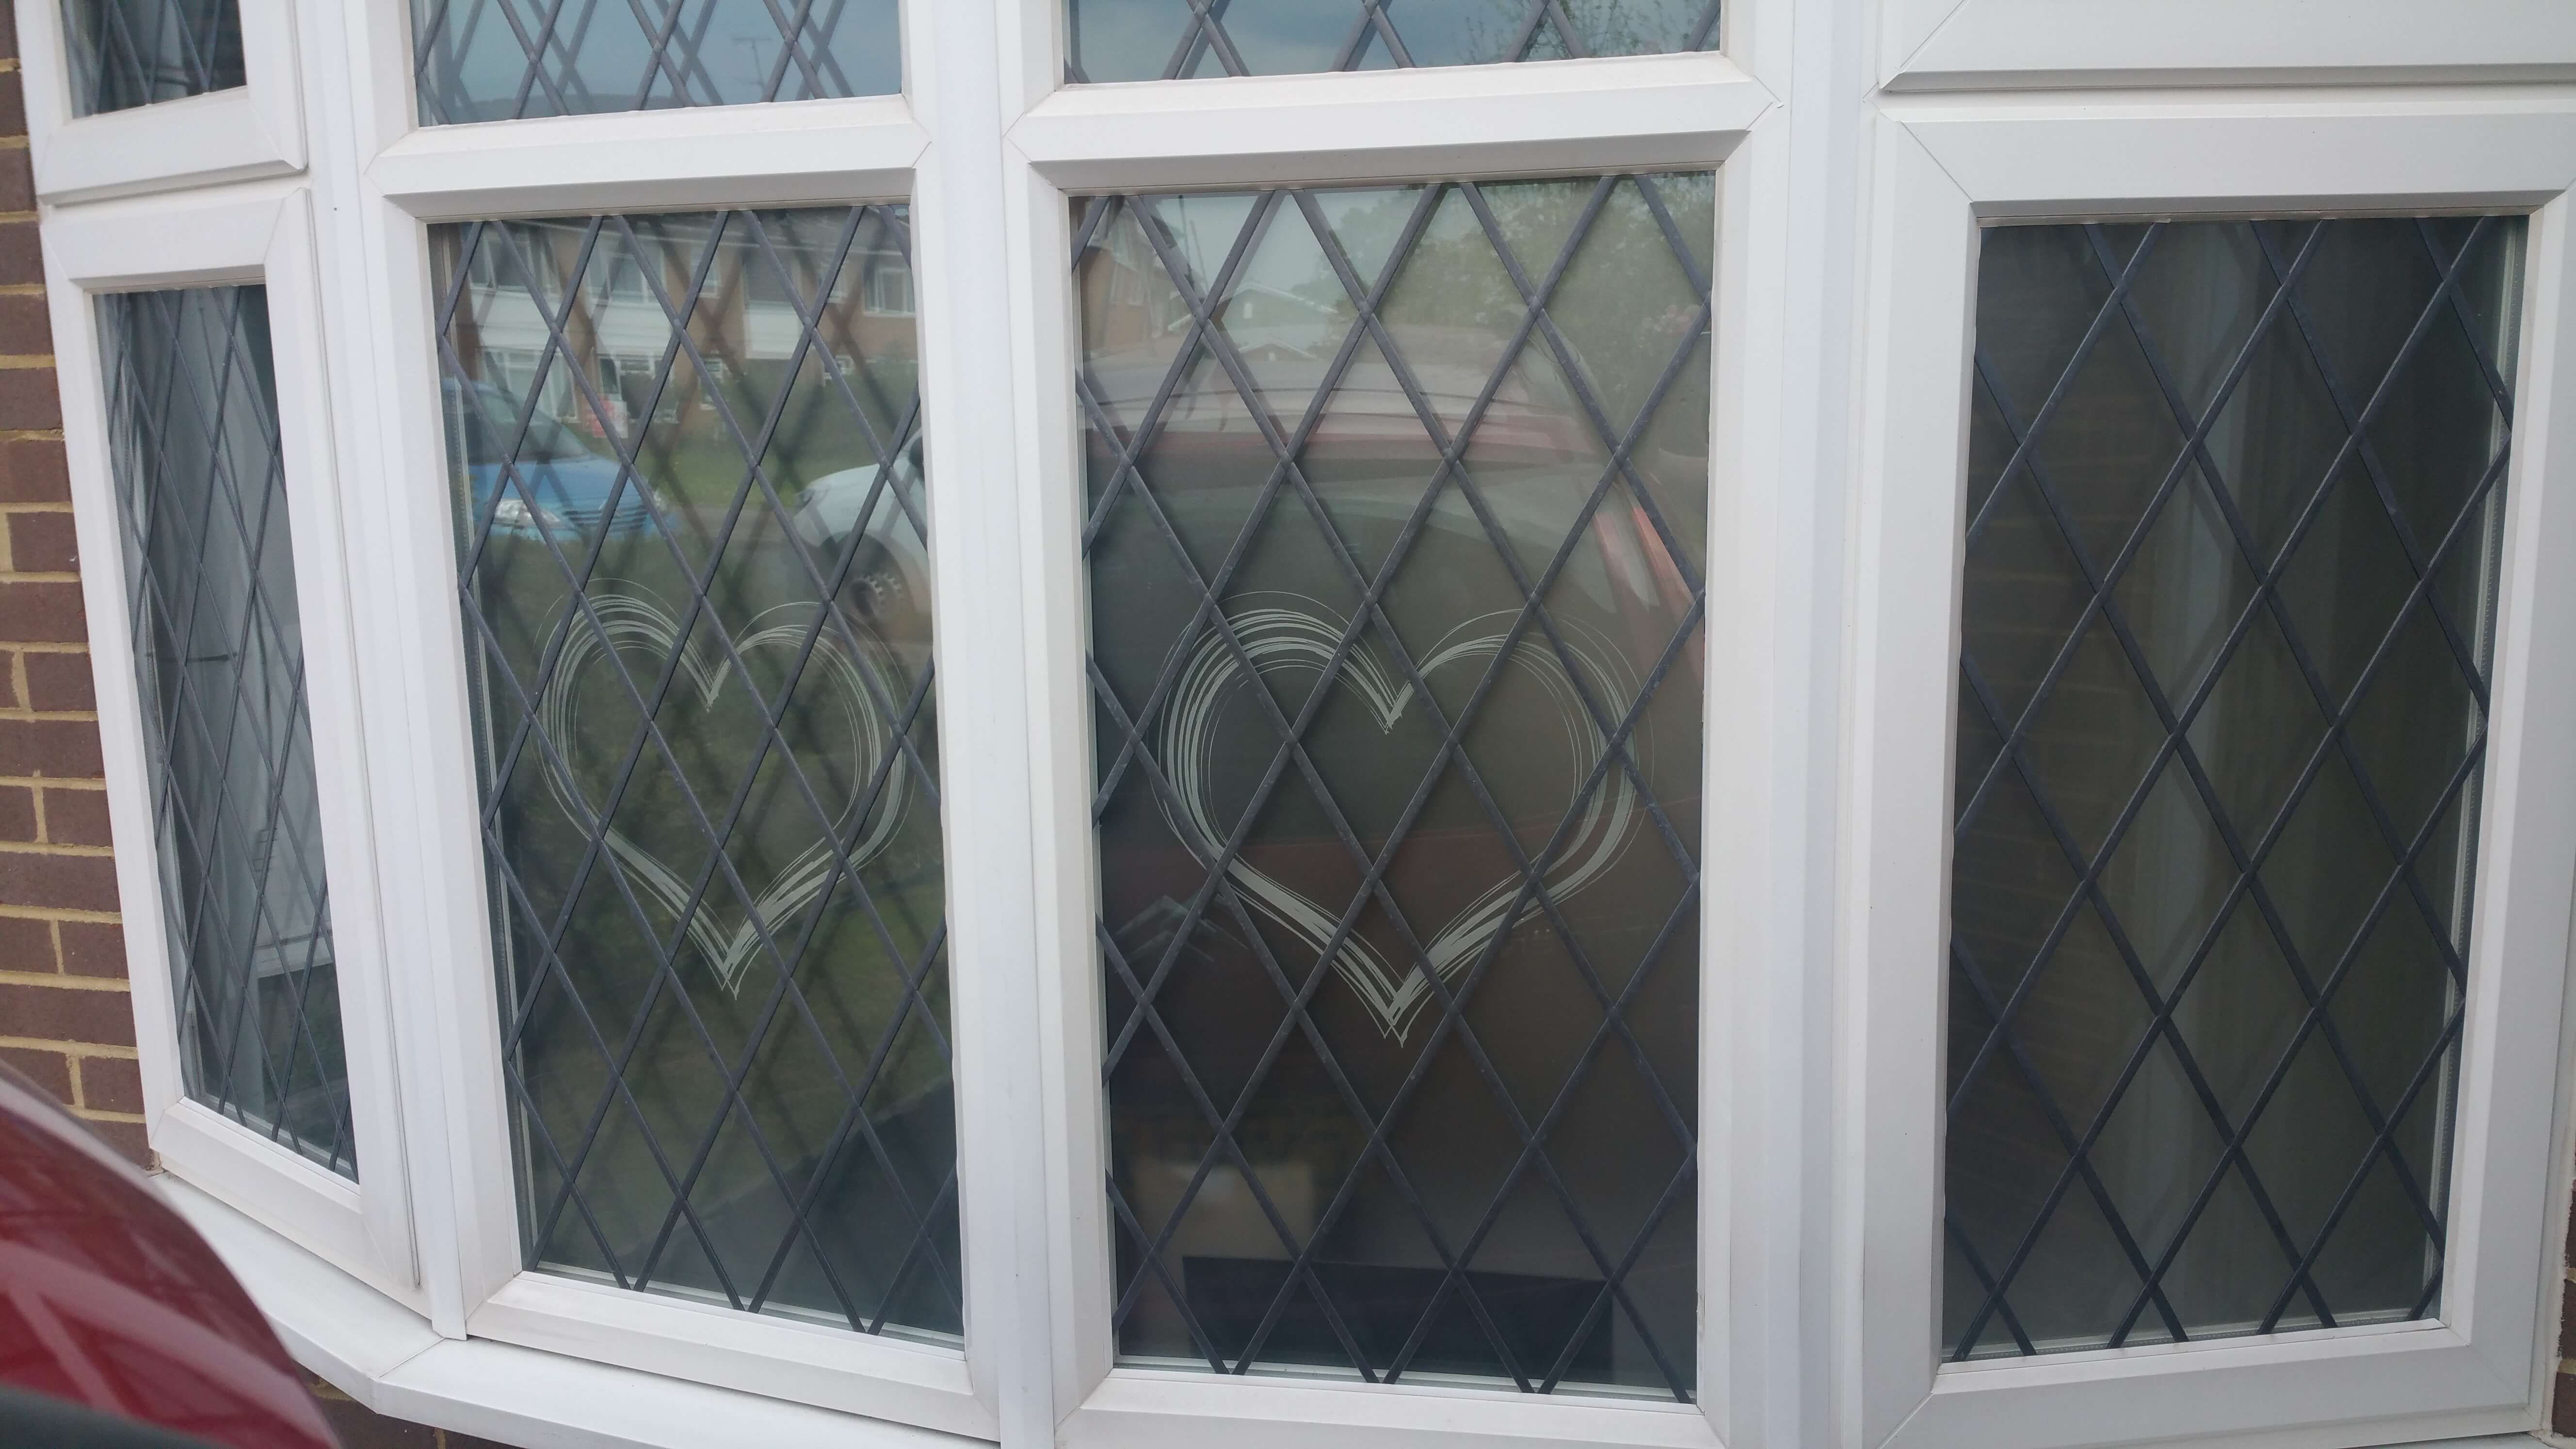 Bespoke Window Film for Home or Business